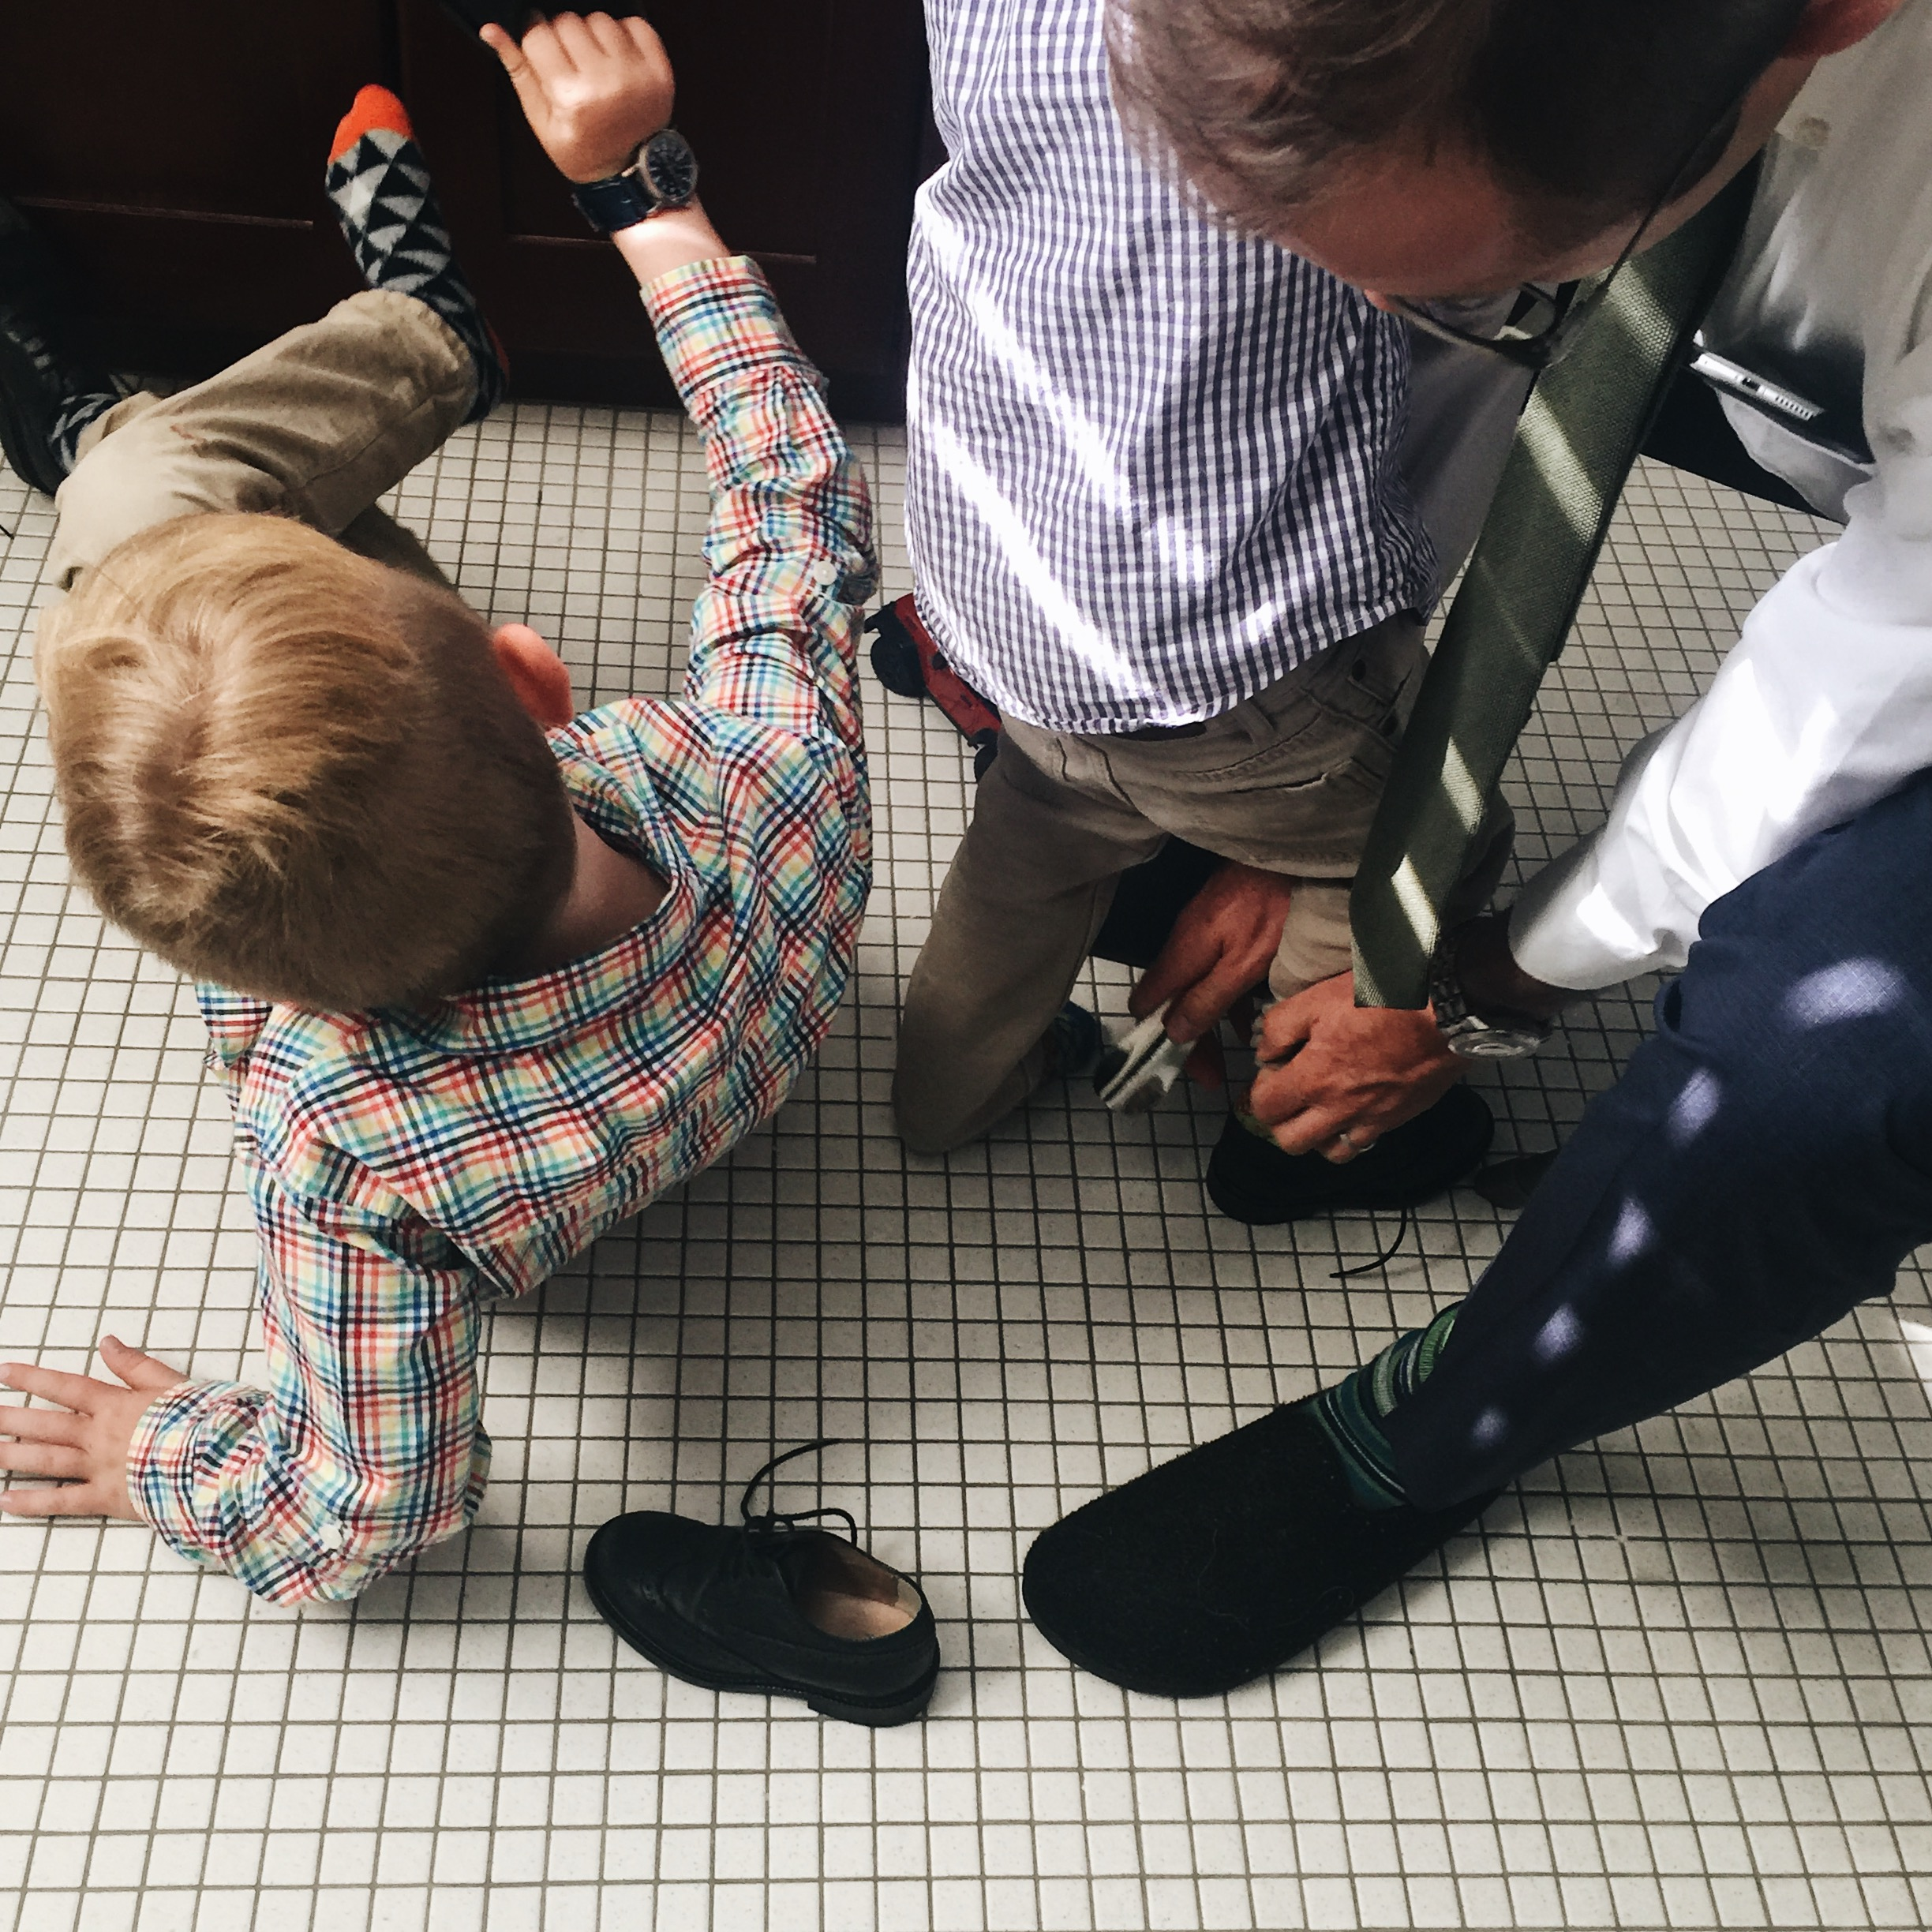 Putting on church shoes...a scene that plays out weekly at our house! The boys line up, and Dad helps them put them on and tie them...Church shoes are tough!